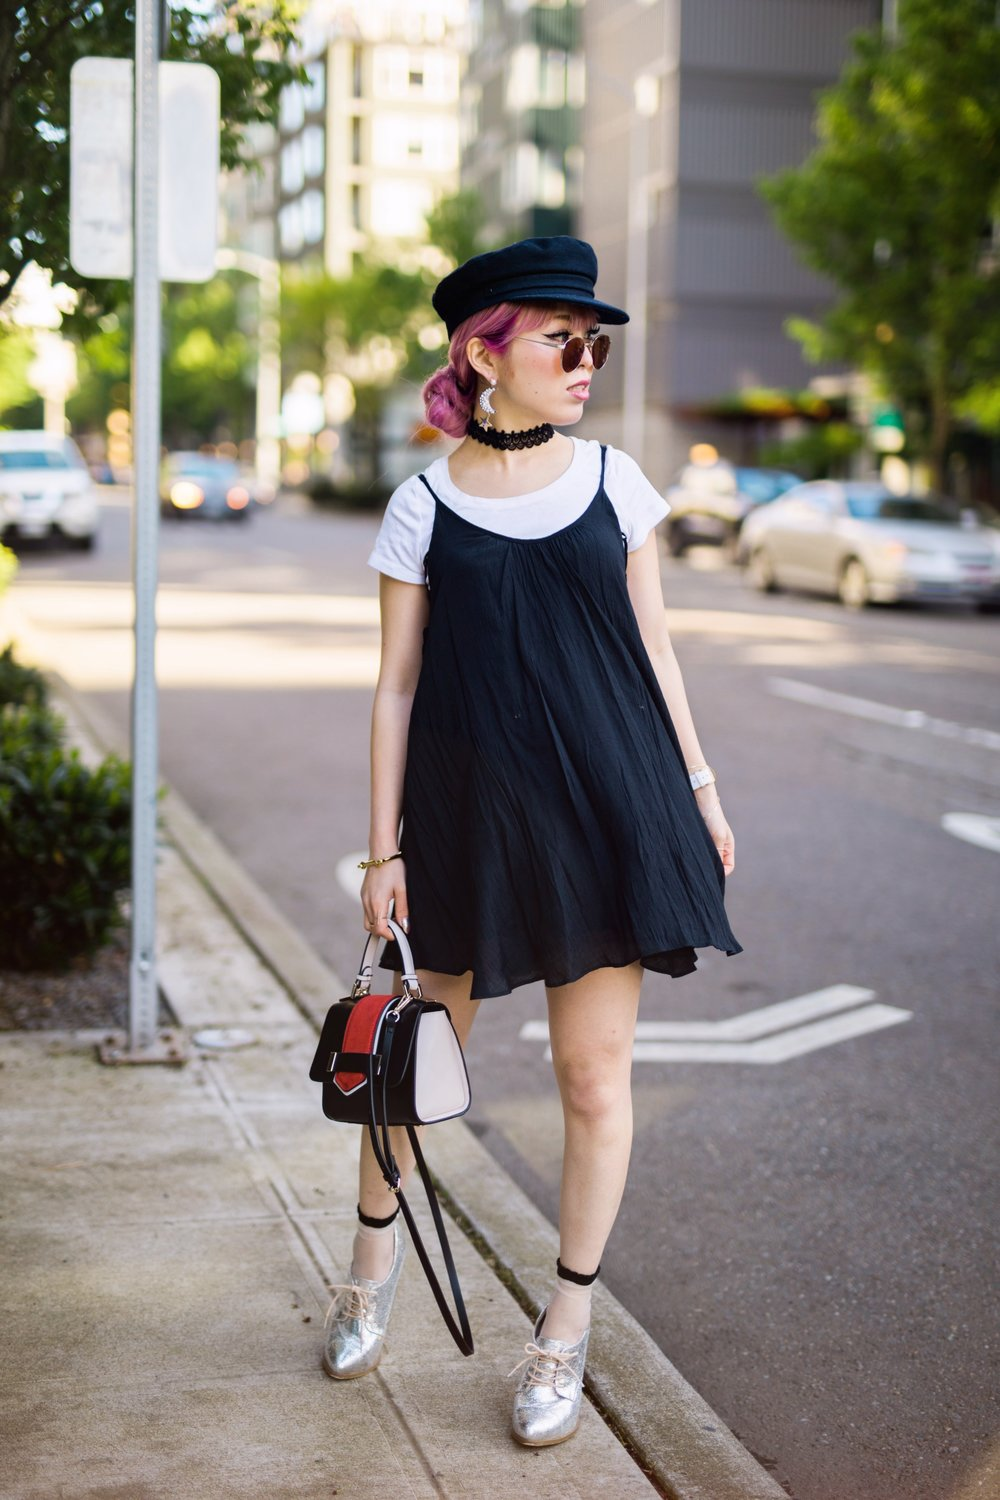 Aritzia News Boy Cap_Polette Retro Round Sunglasses_Mango Moon Star Earrings_Shopdixi Lace Choker_Forever 21 White Tee_Urban Outfitters Little Black Dress_Zara Bag_Sheer ankle Socks_ASOS Glitter Block heels Shoes_Aikas Love Closet_Seattle Fashion Blogger_Japanese_Pink hair